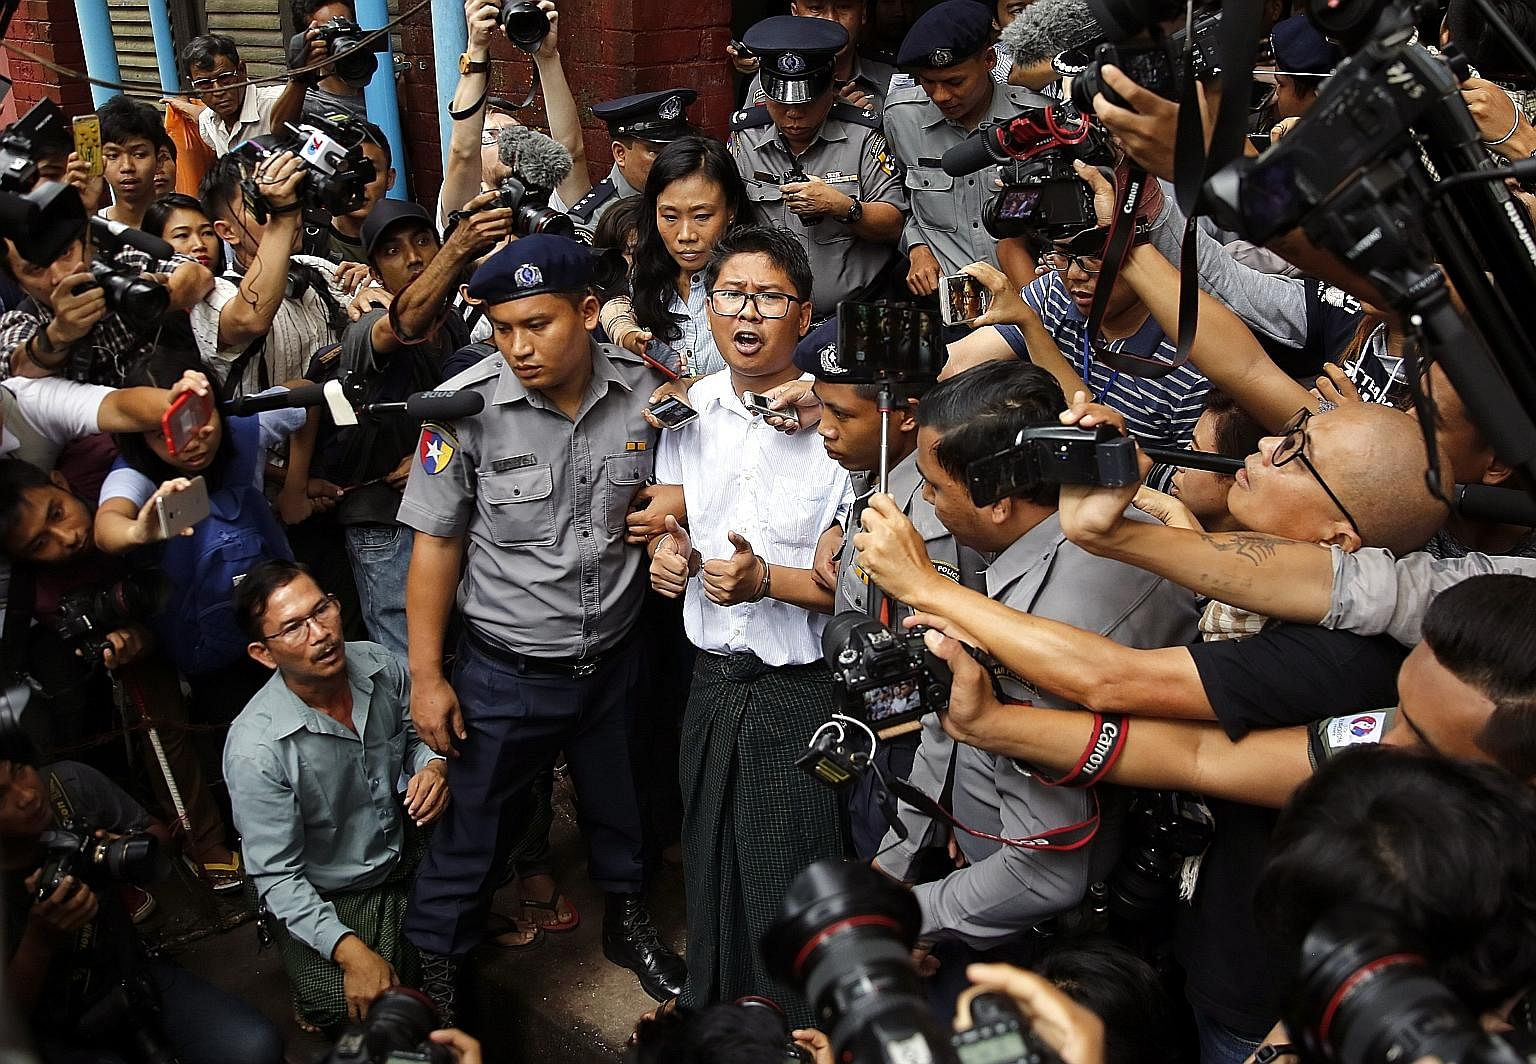 Reuters journalist Wa Lone (centre), 32, maintained his innocence outside a Yangon court yesterday after he was sentenced to seven years in jail with his colleague Kyaw Soe Oo, 28, for breaching a law on state secrets. They had said police planted do